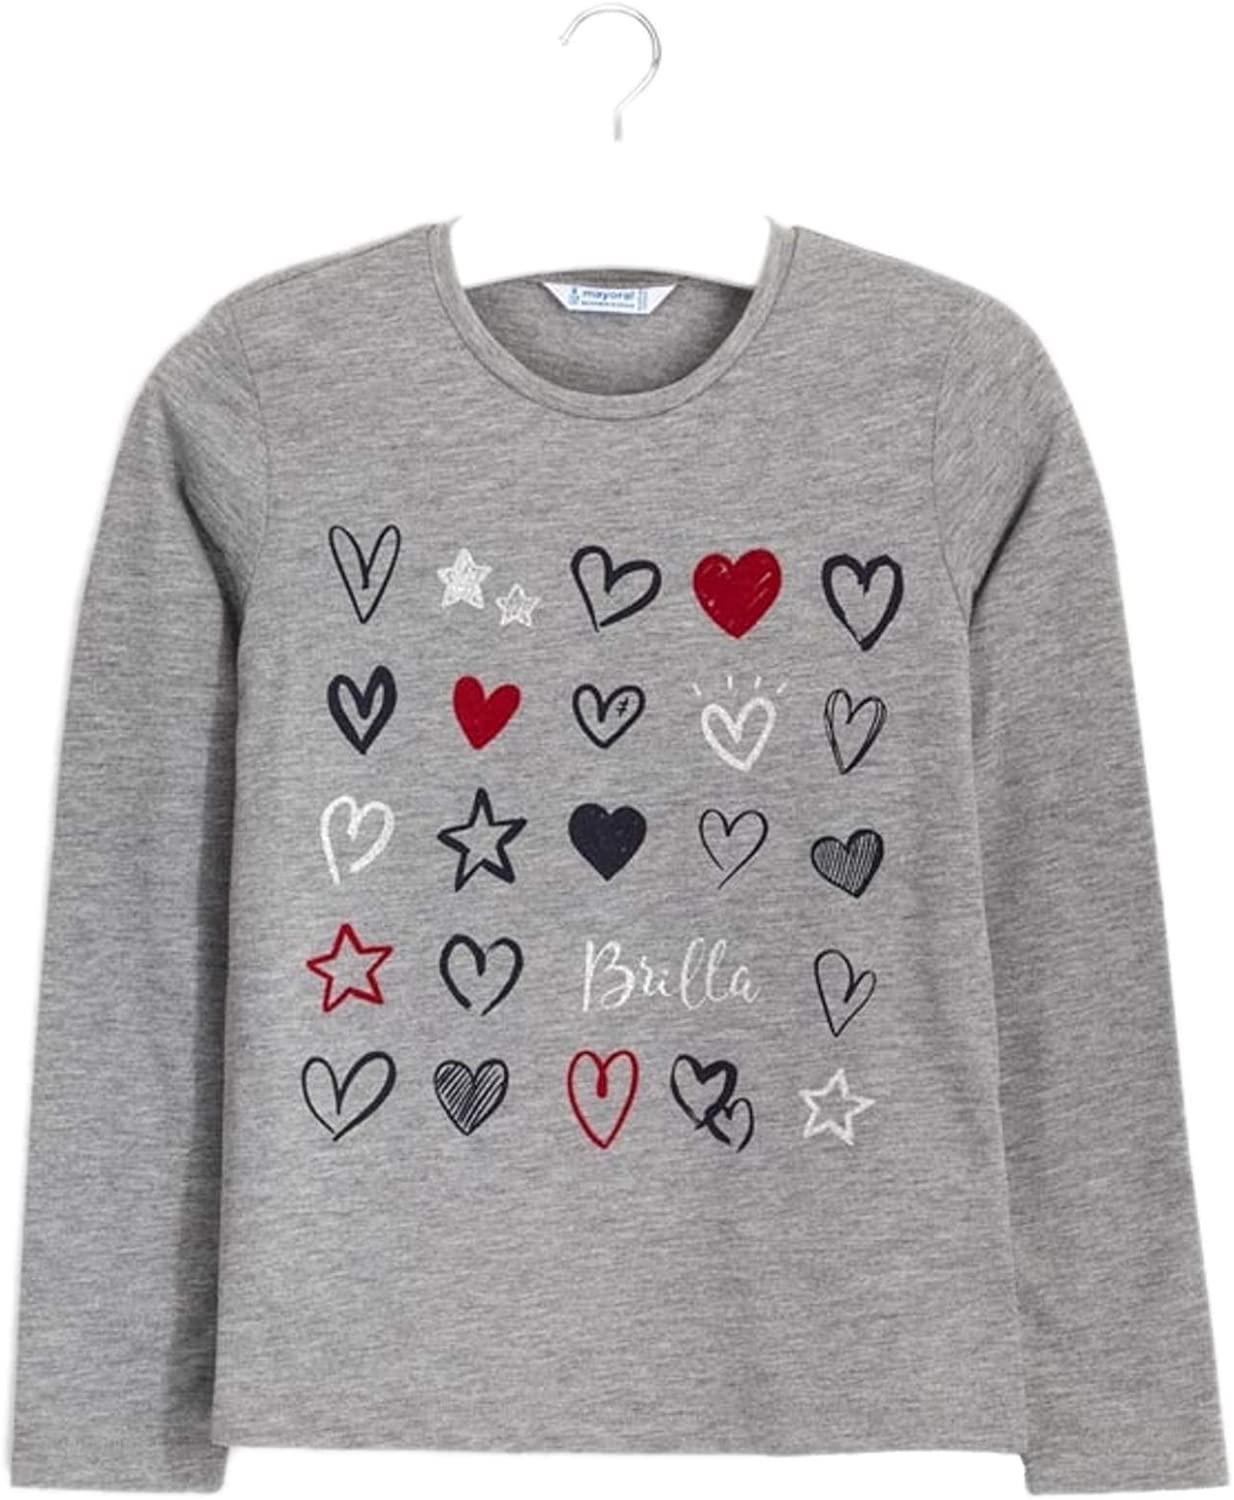 Mayoral - L/s Hearts t-Shirt for Girls - 7073, Steel